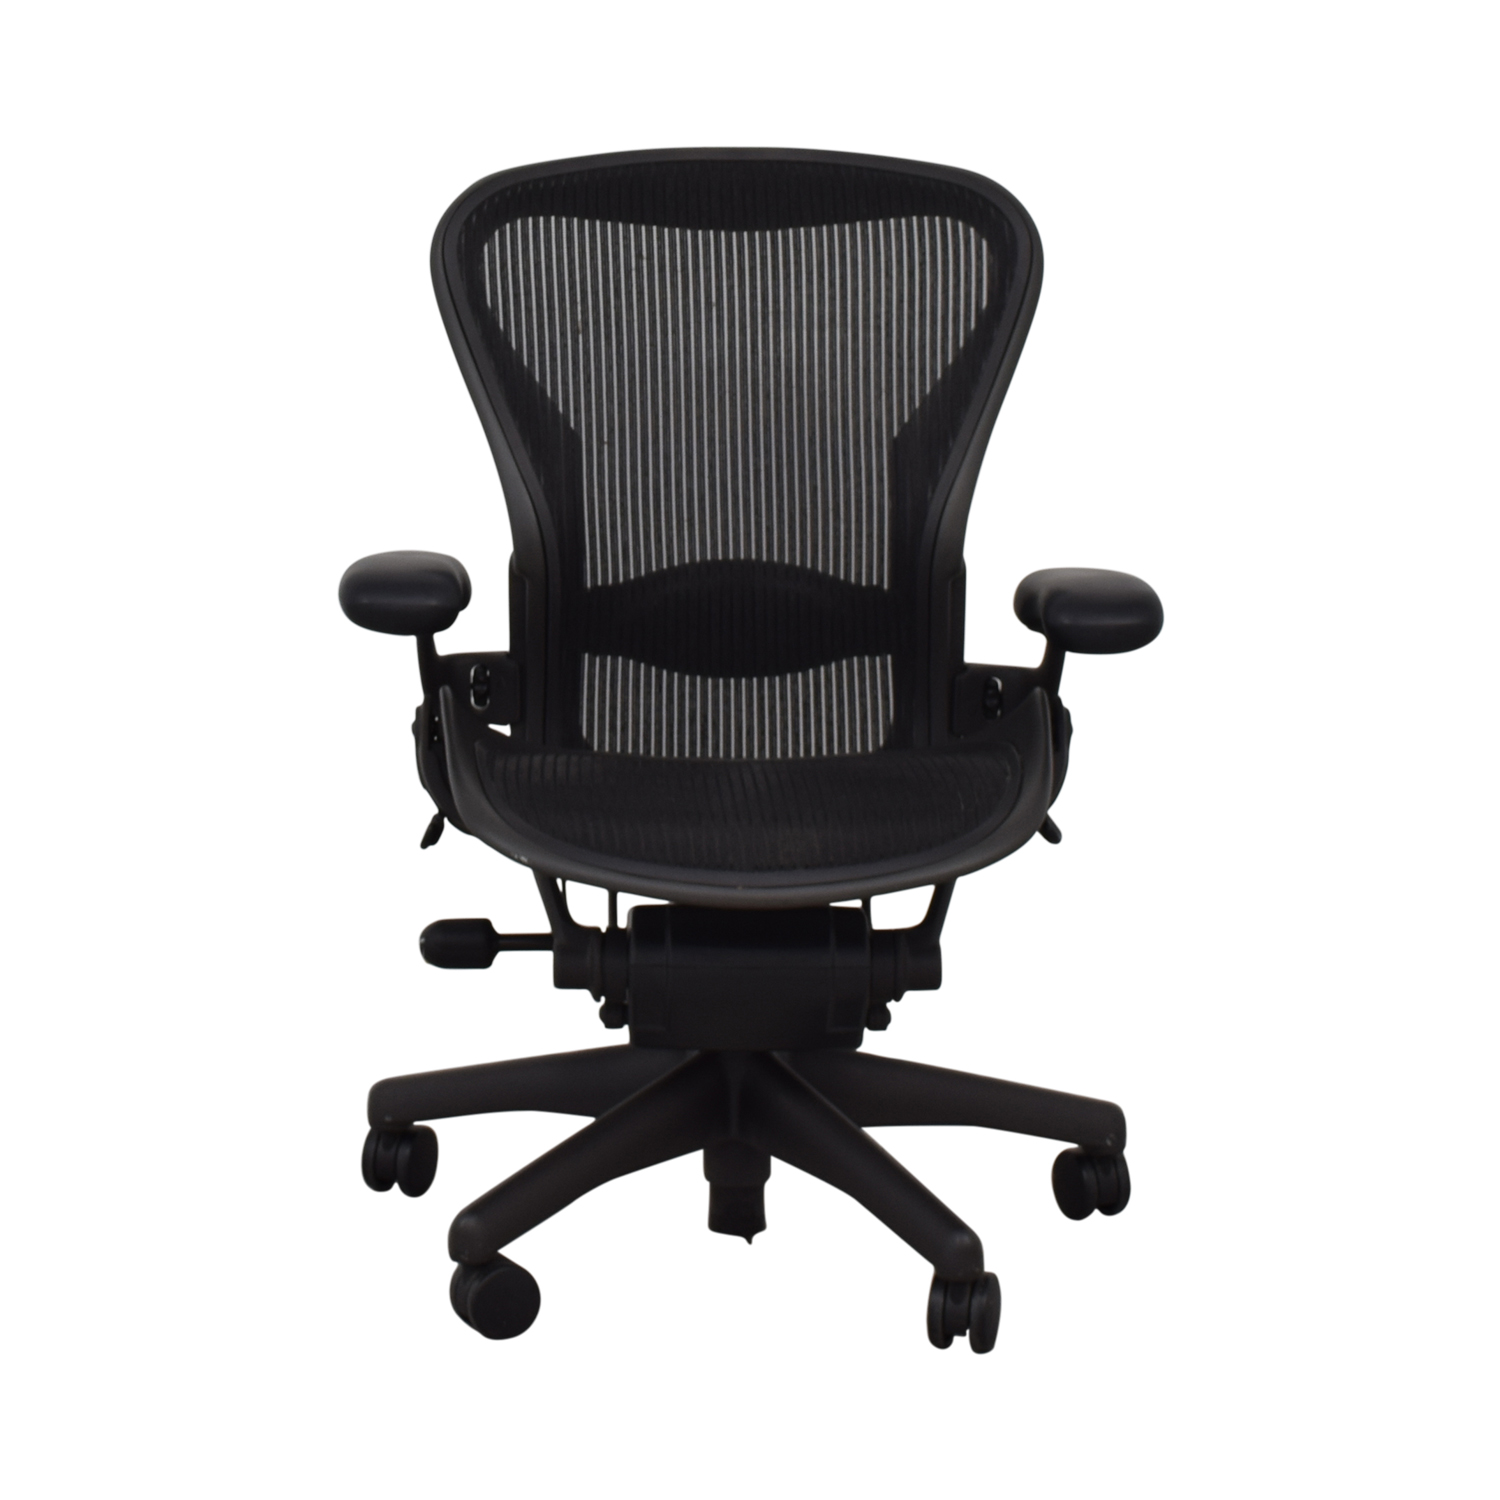 Herman Miller Aeron Size B Black Office Desk Chair sale